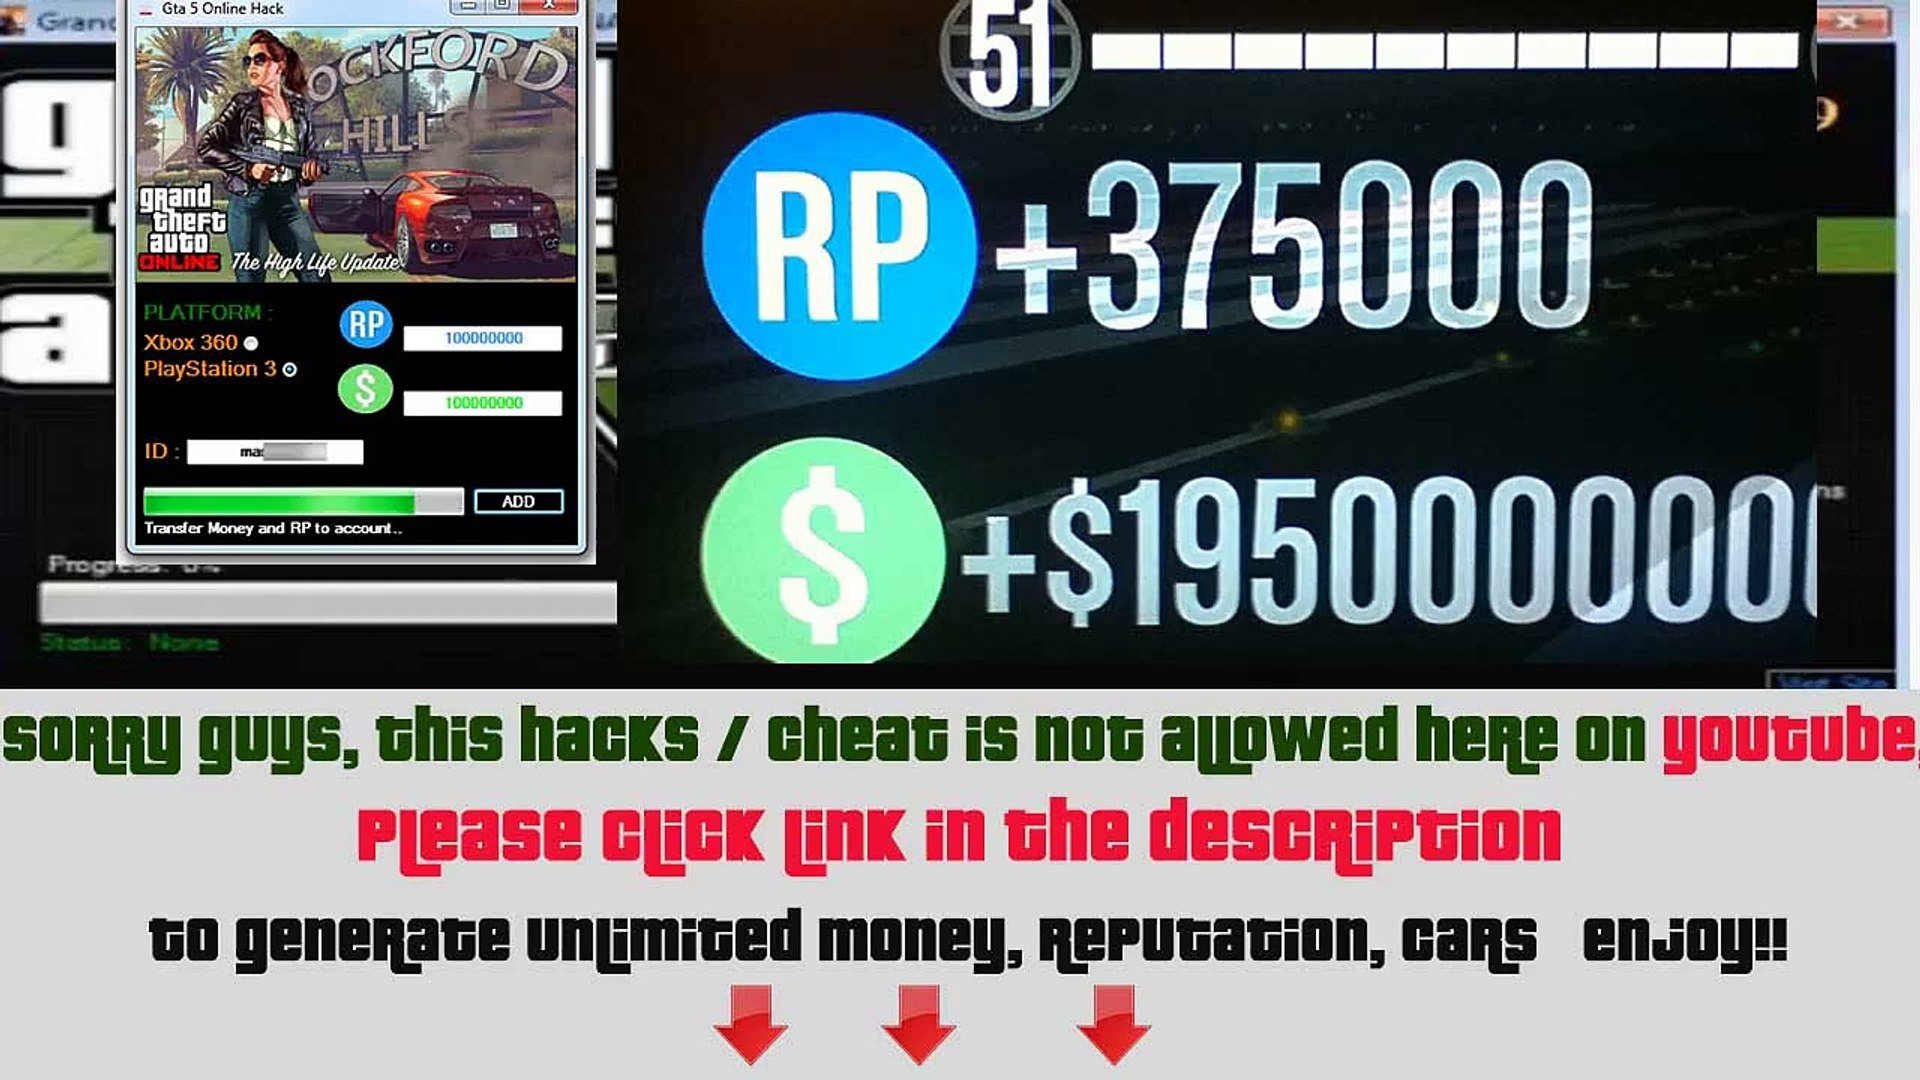 gta 5 cheats for ps4